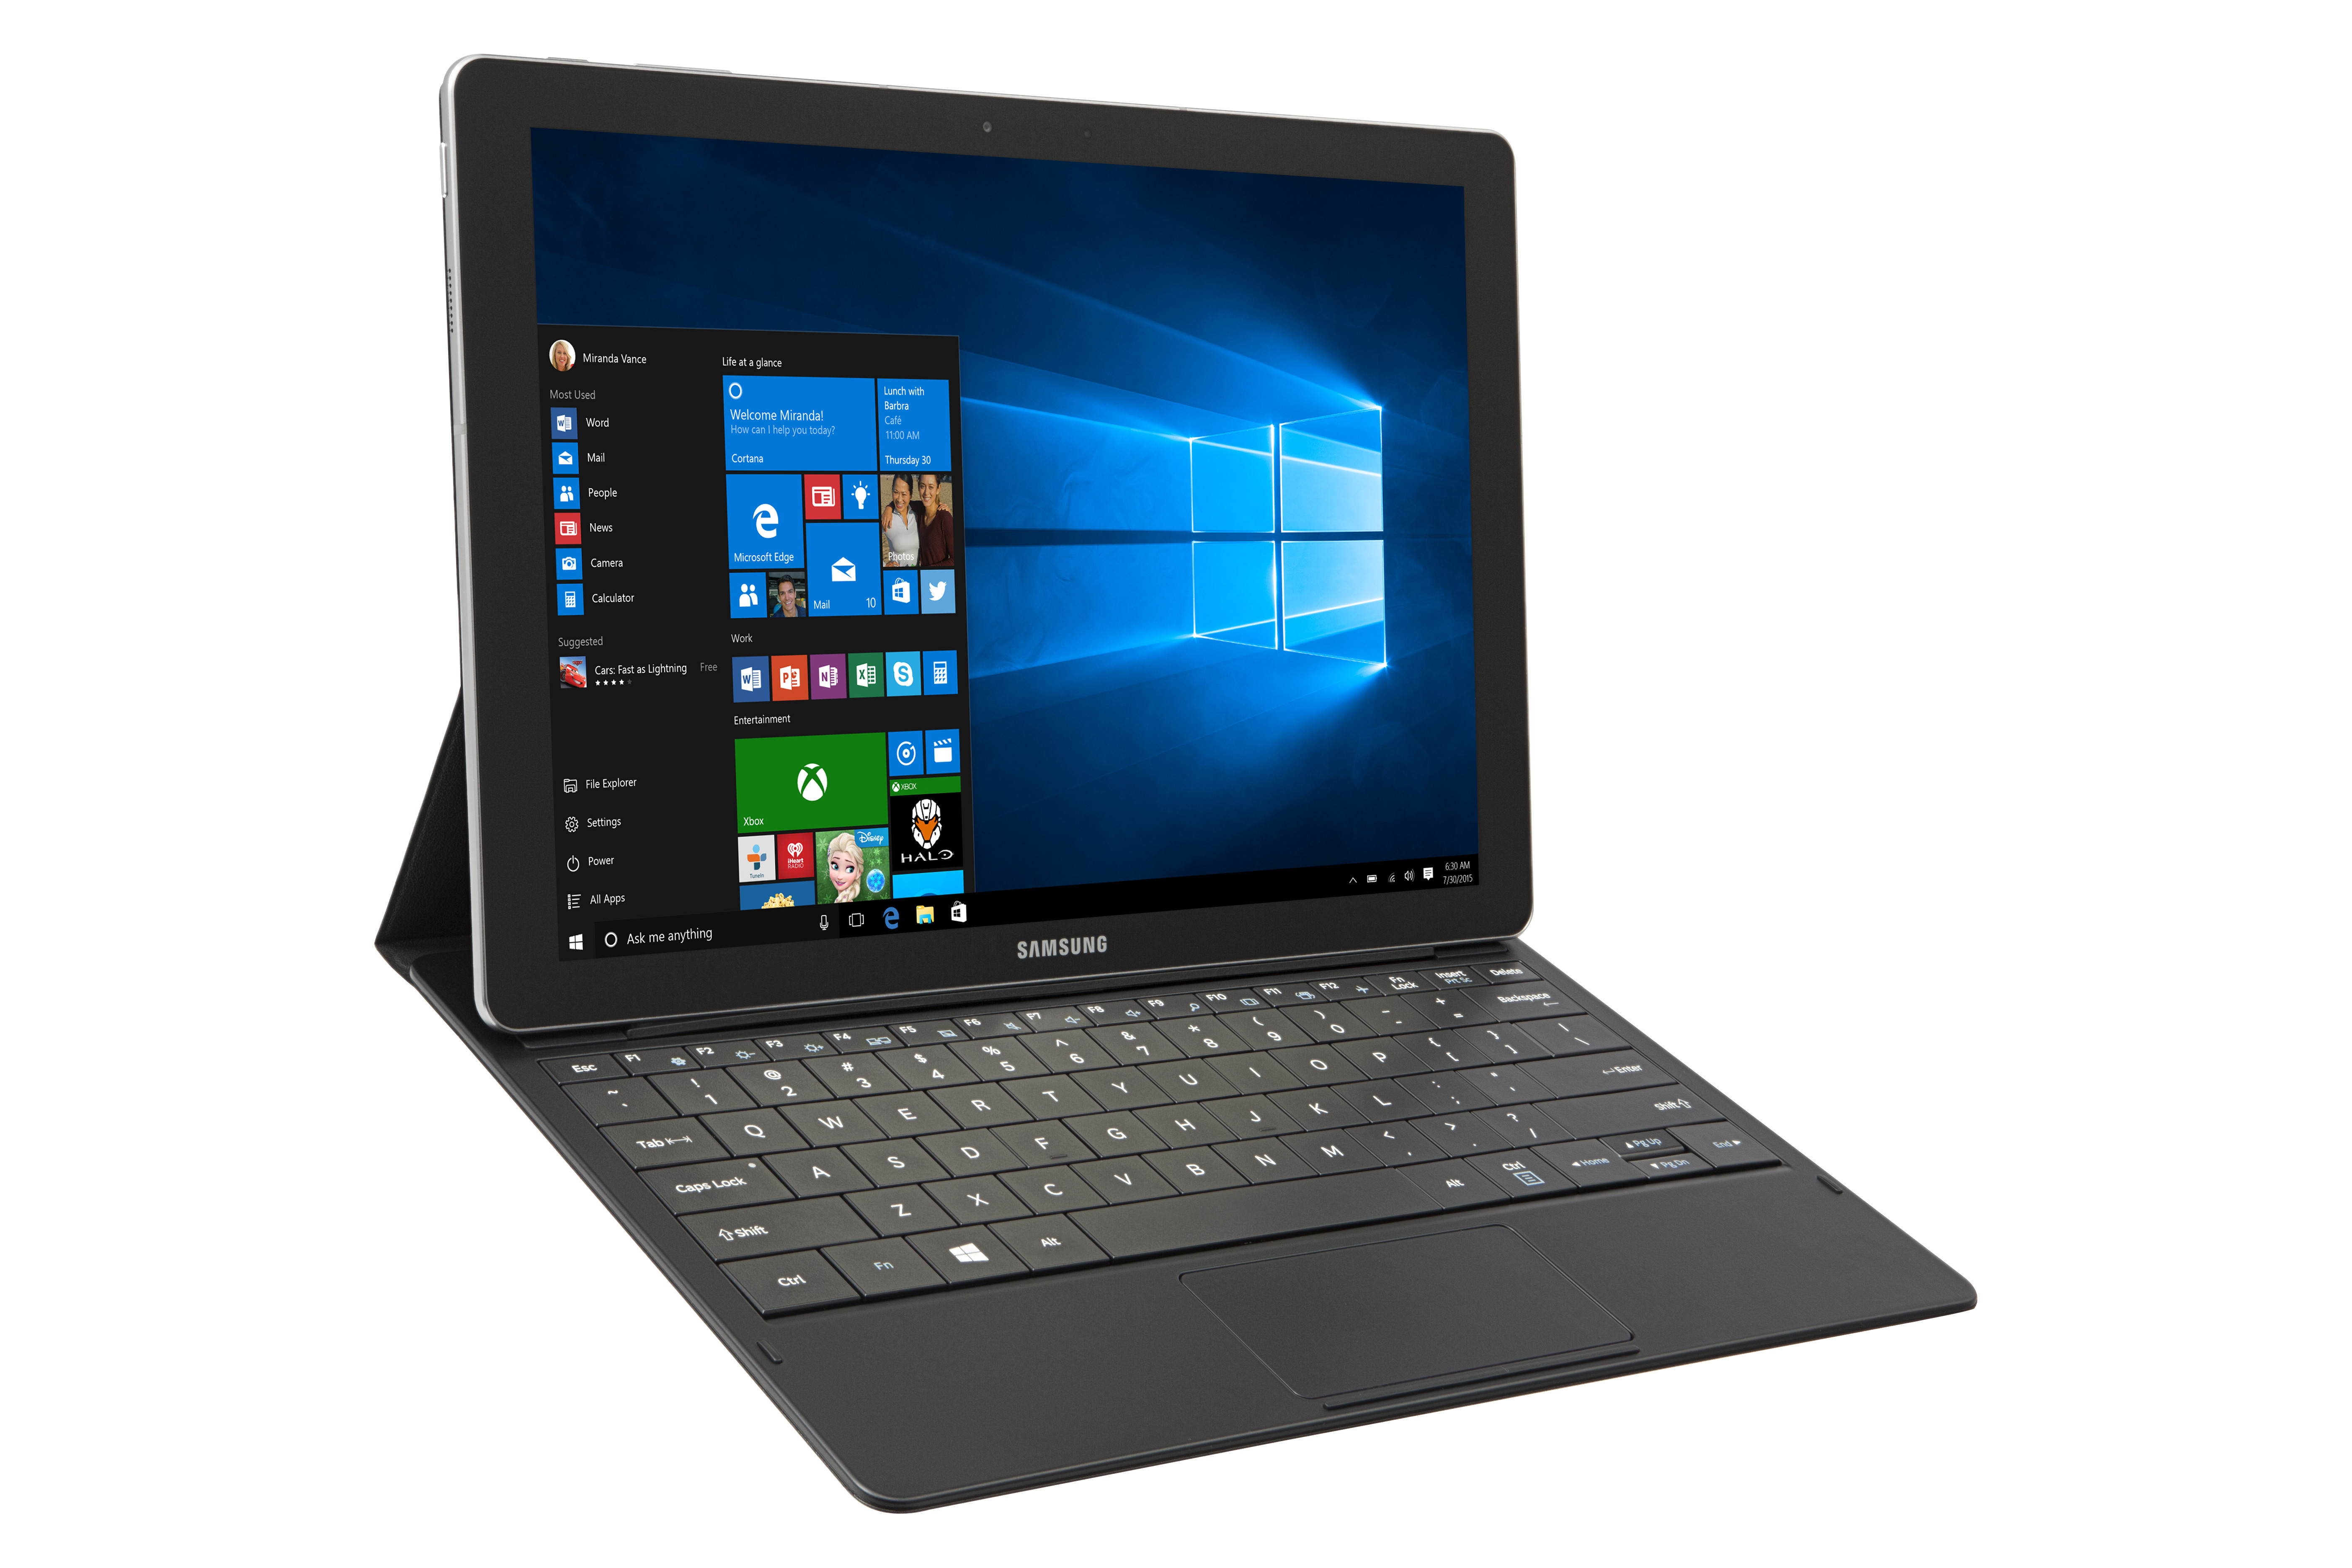 Samsung unveils 6.3mm-thick Galaxy TabPro S with Windows 10, 4G, 12-inch 1440p Super AMOLED